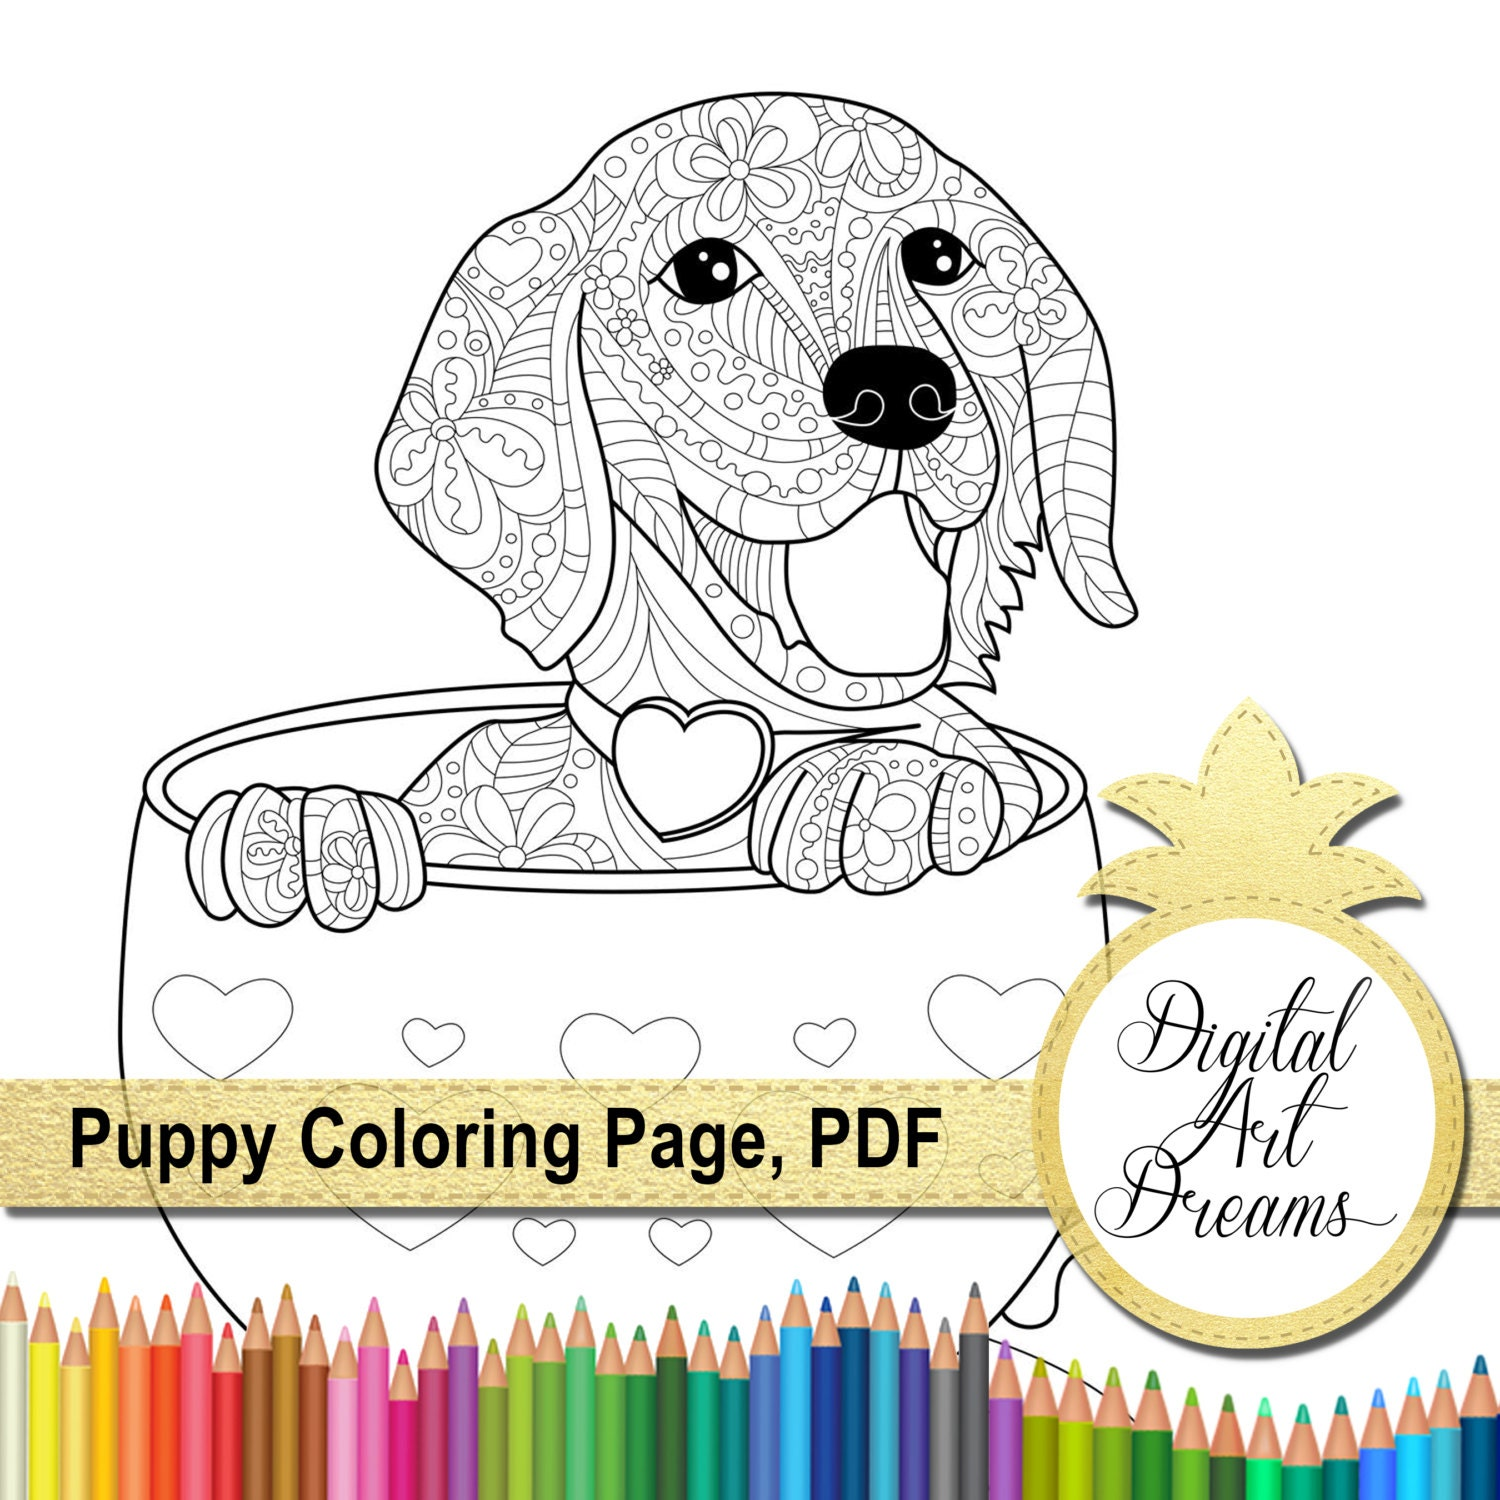 Puppy Coloring Pages Pdf : Puppy coloring page a golden retriever printable